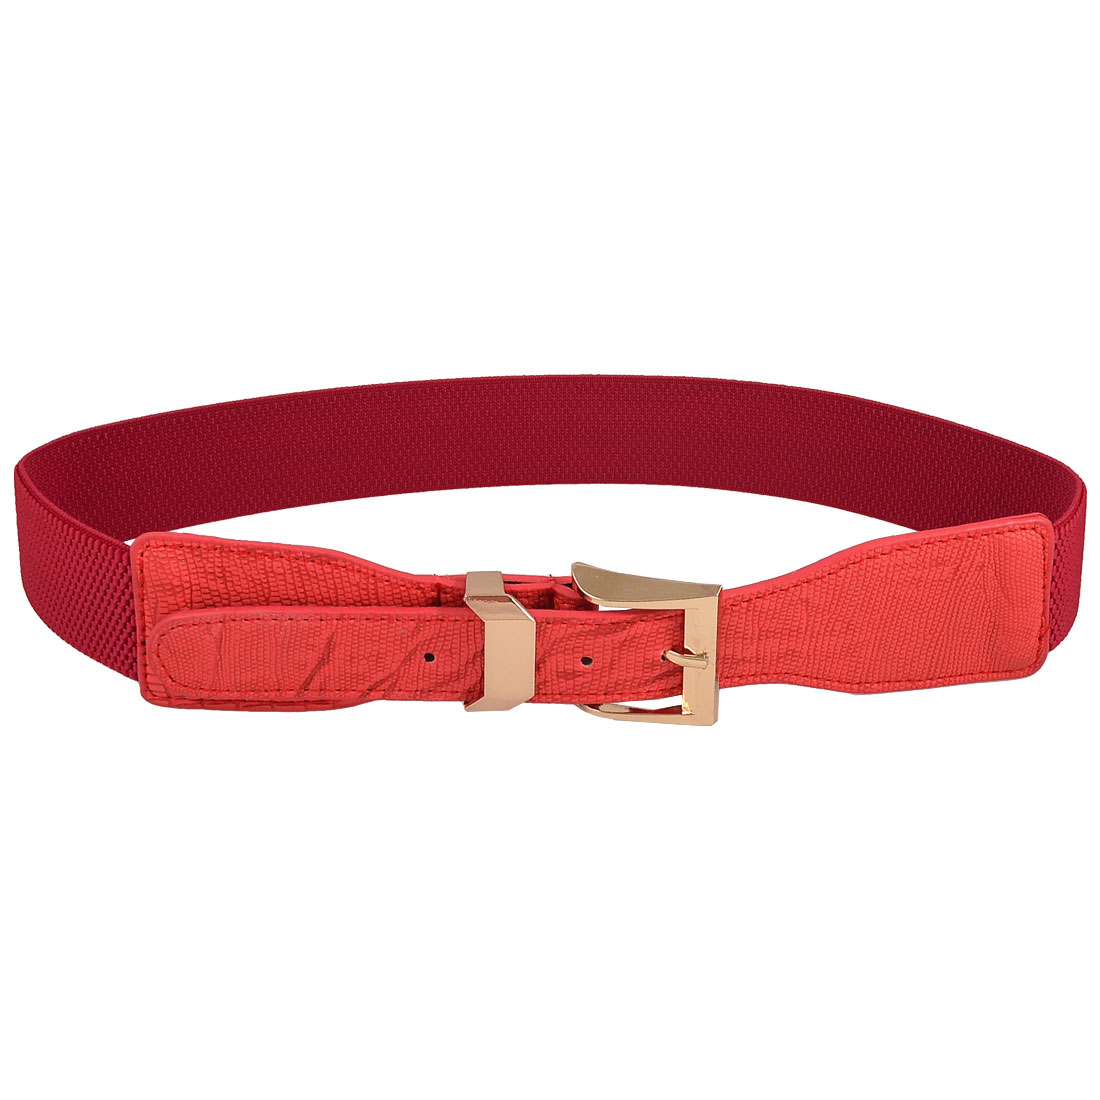 Lady Woman Gold Tone Buckle Crocodile Print Red Stretch Waist Belt Waistband